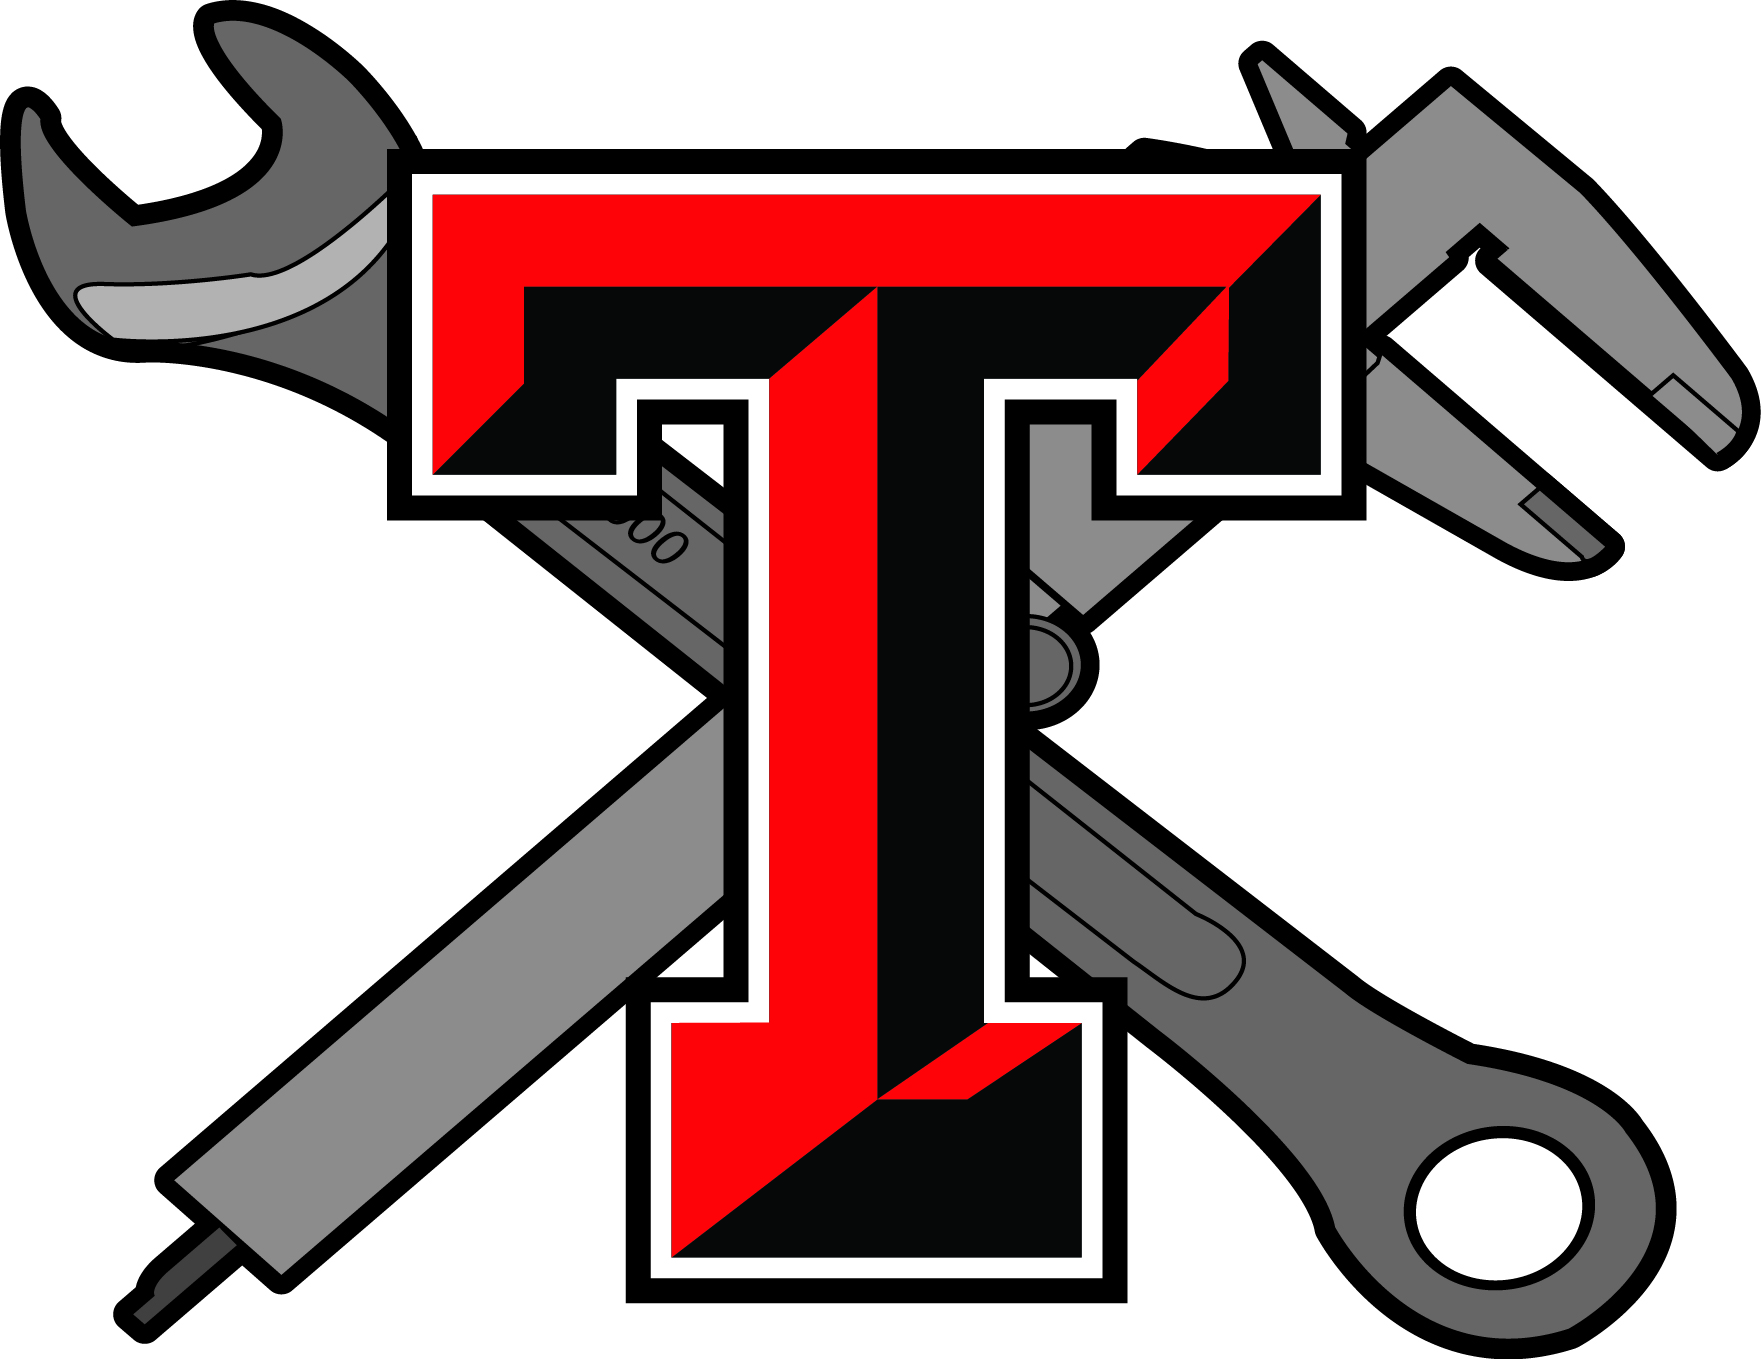 T-Tech program logo